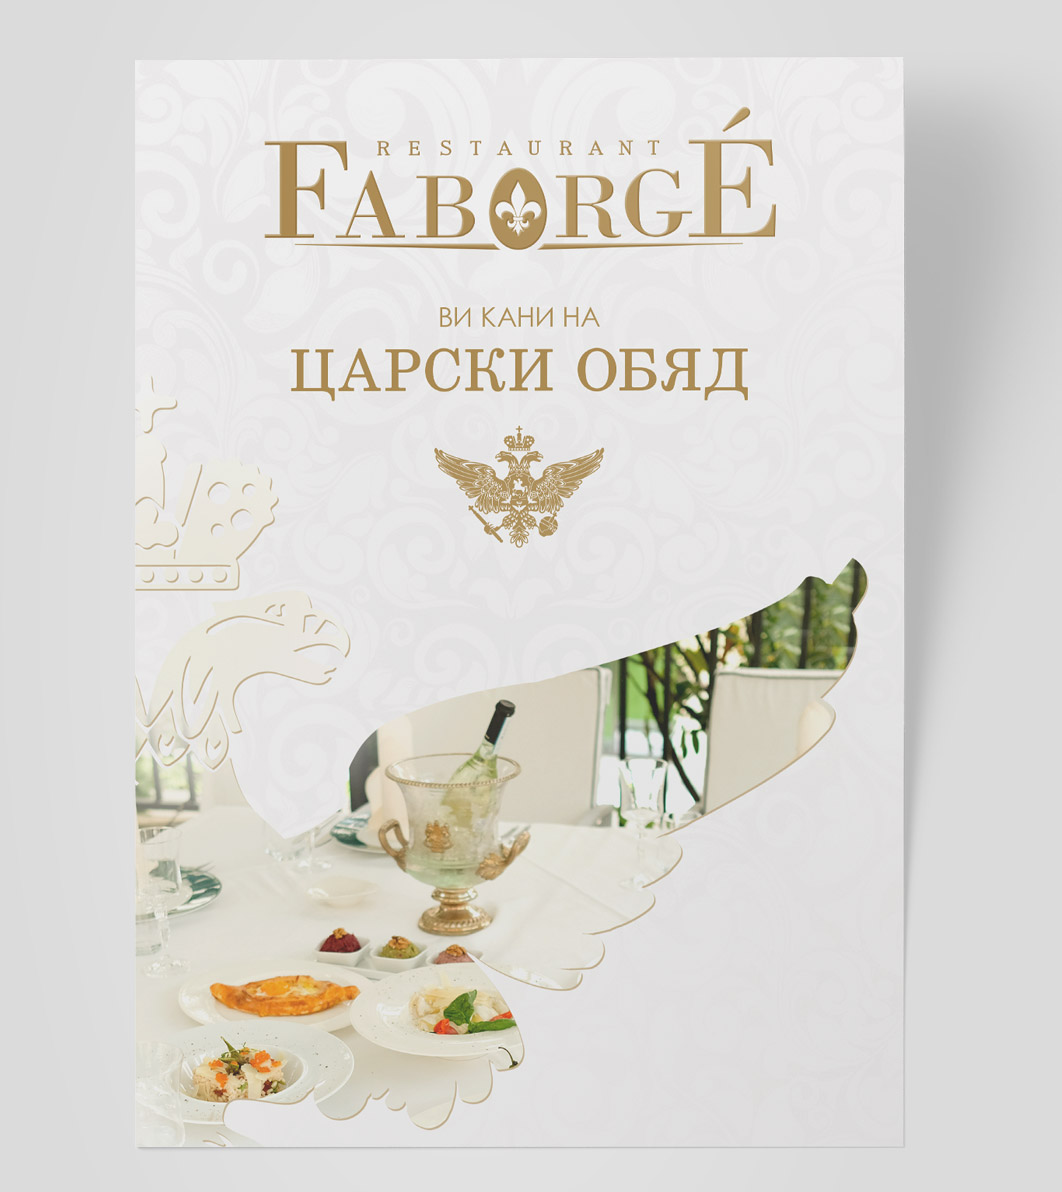 Advertising flyer design and print - Restaurant Faborge